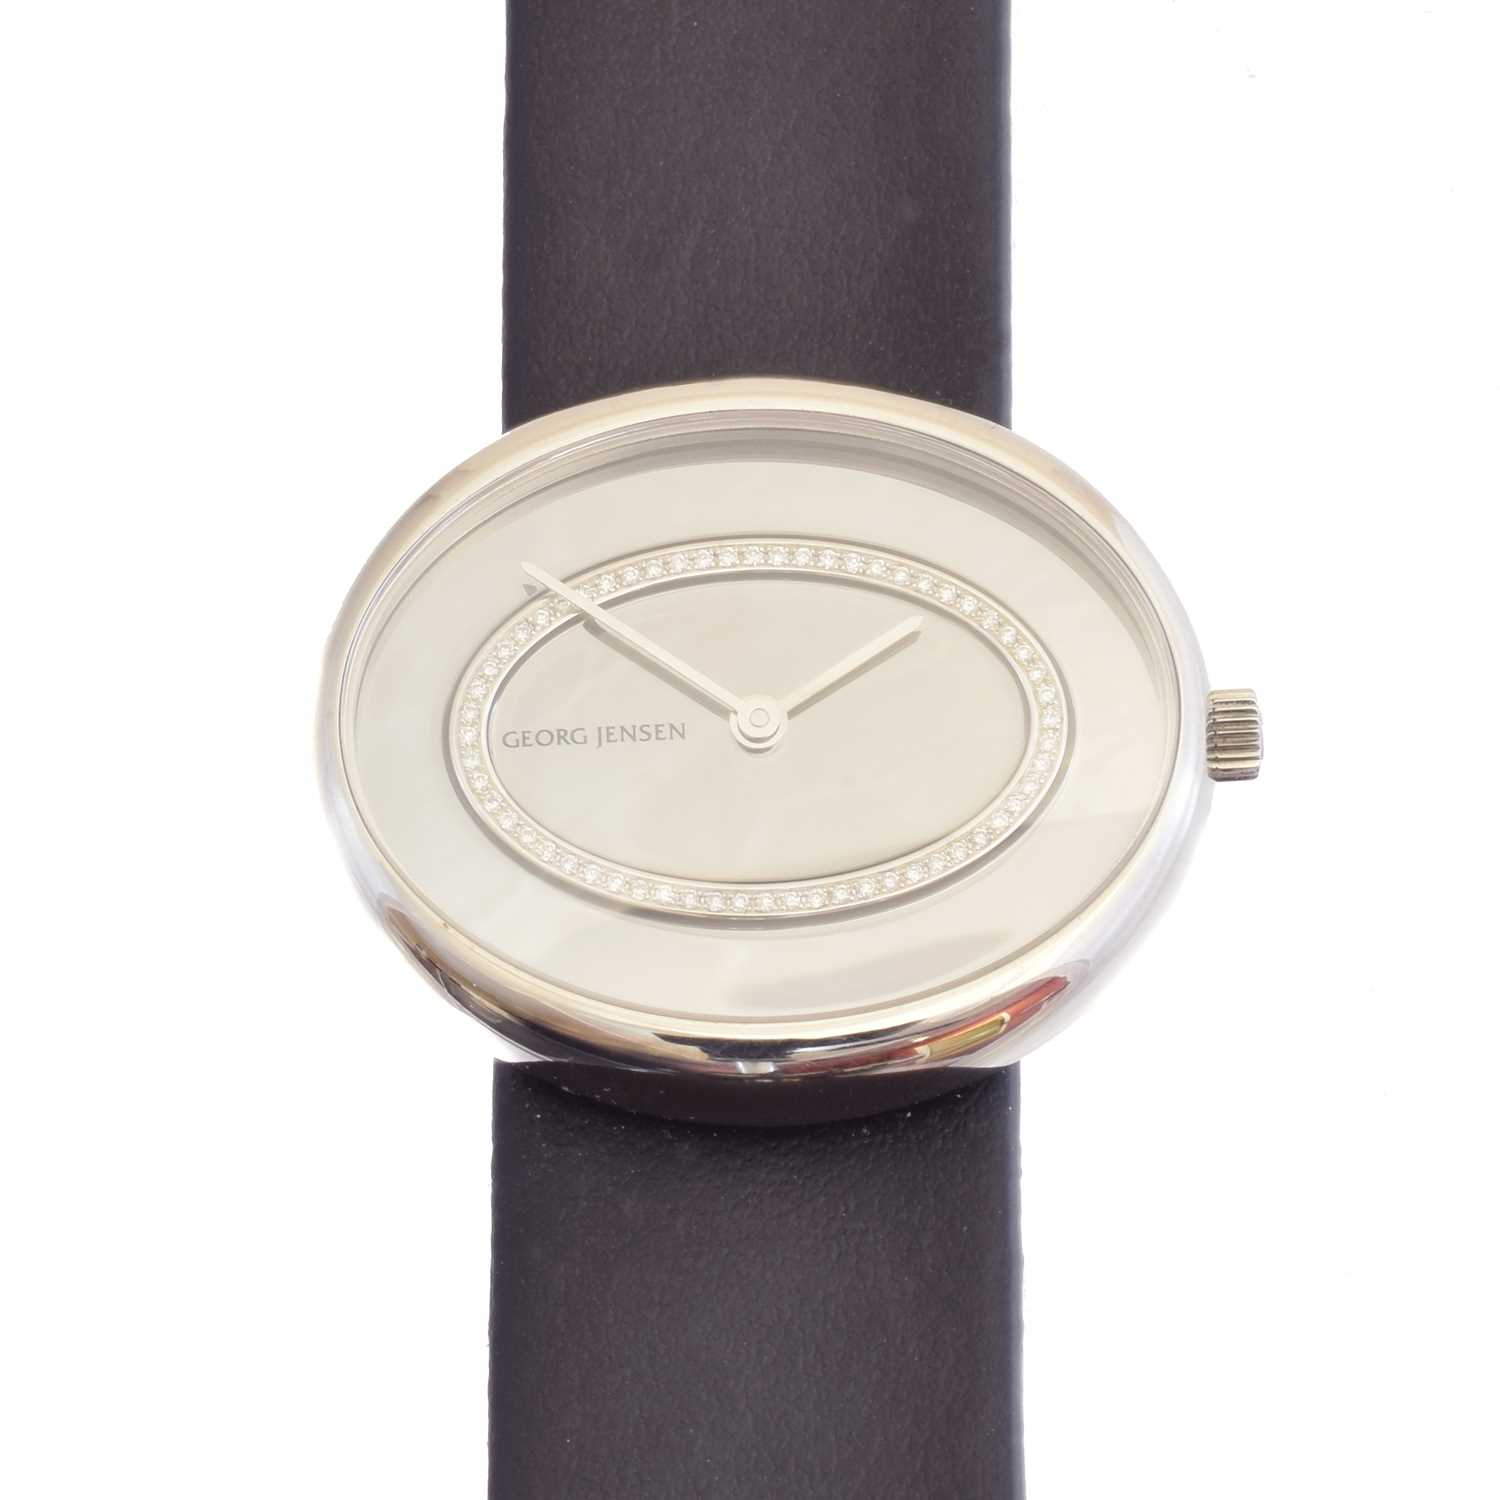 A Georg Jensen Vivianna Oval watch, model no. 323, the oval signed mirrored dial with brilliant cut diamond halo detailing, within a stainless steel case, reference no. 003632, total diamond weight 0.13ct, case diameter 34mm. With two leather straps, box and paperwork.